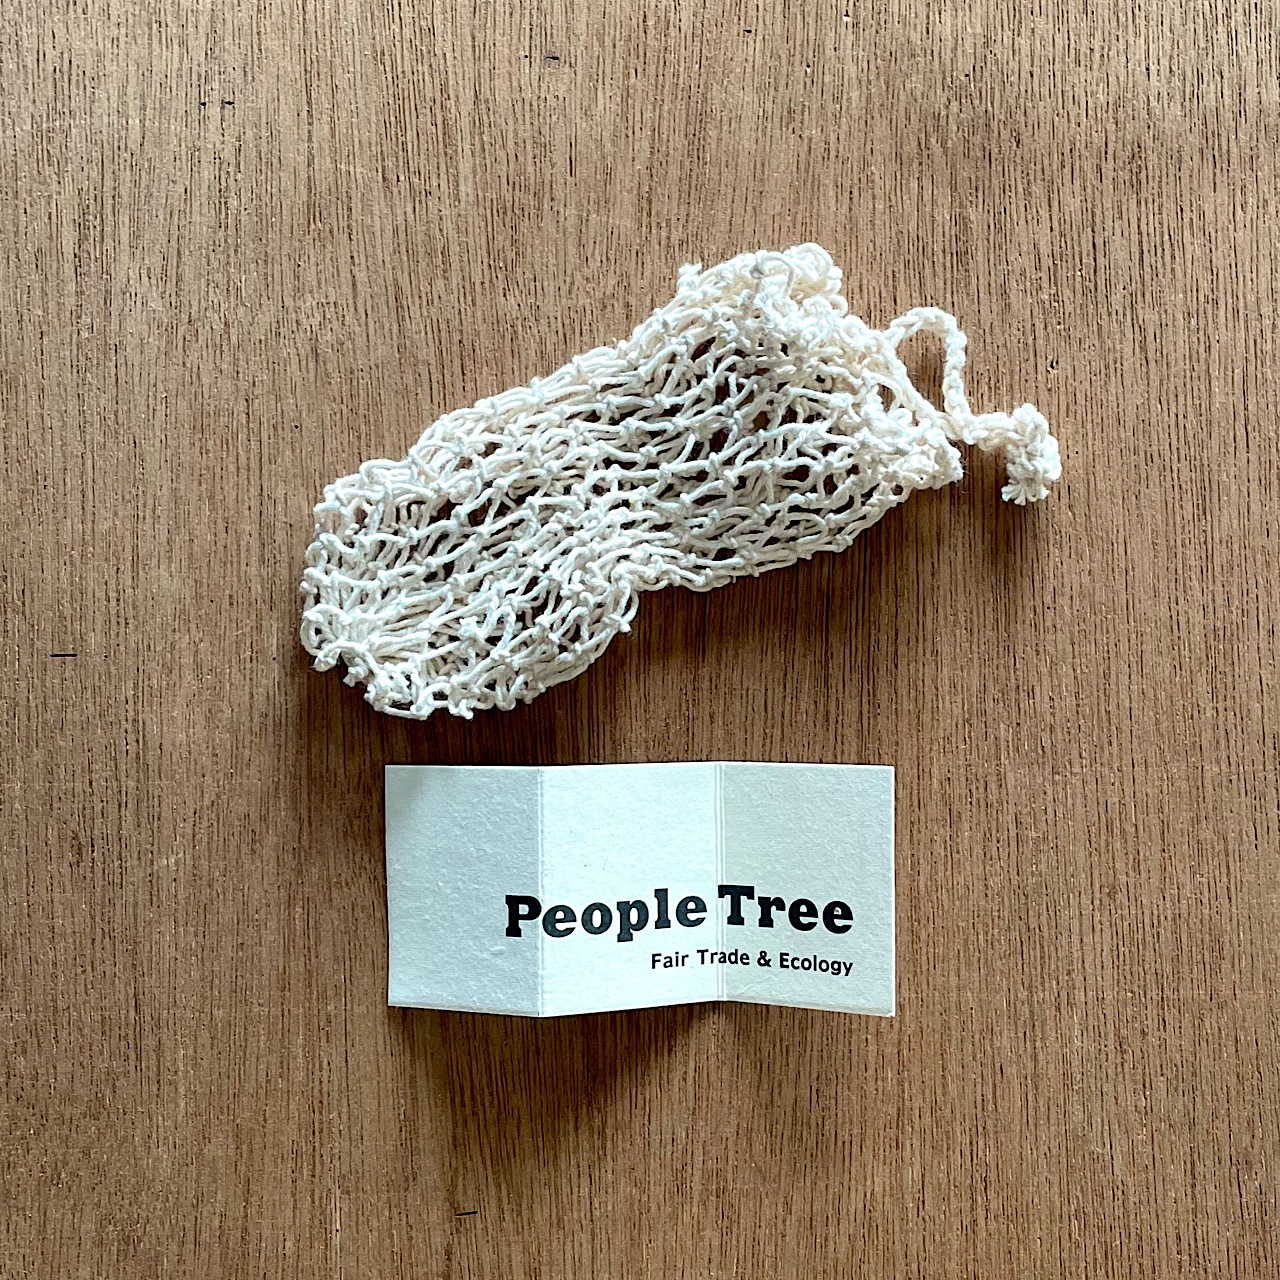 PeopleTree 綿メッシュの石鹸袋